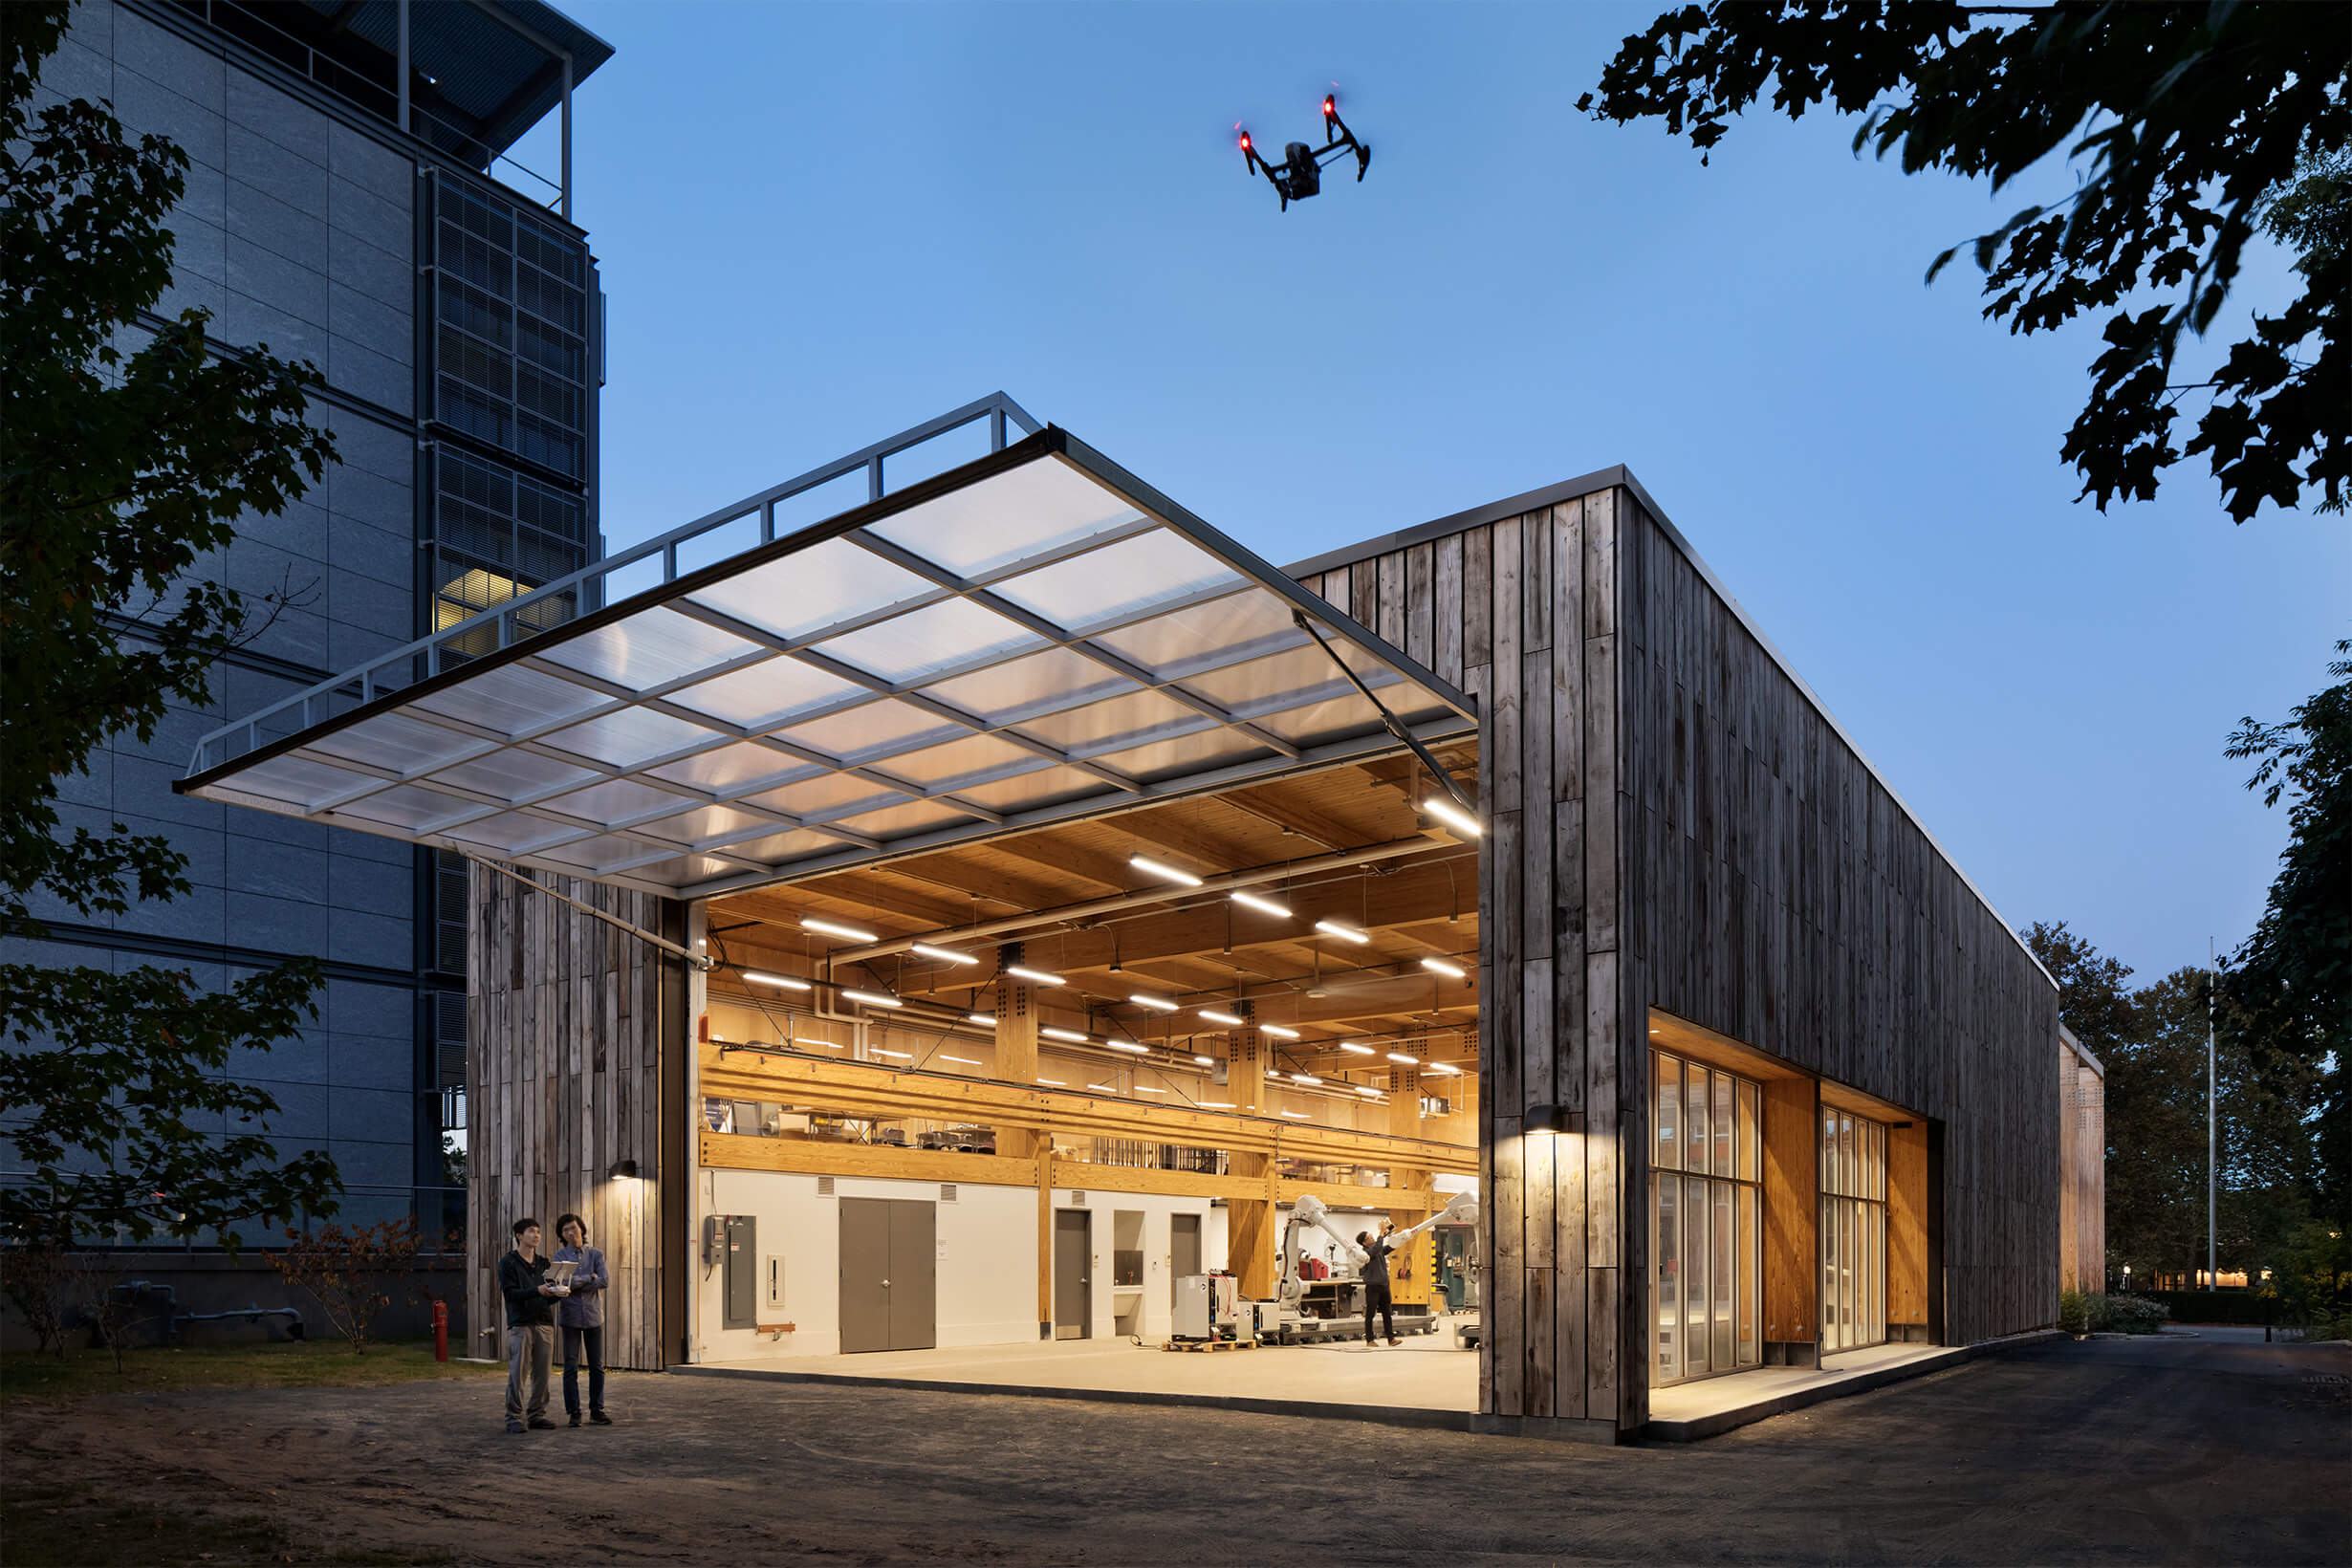 a wooden structure with a large glass garage door opened